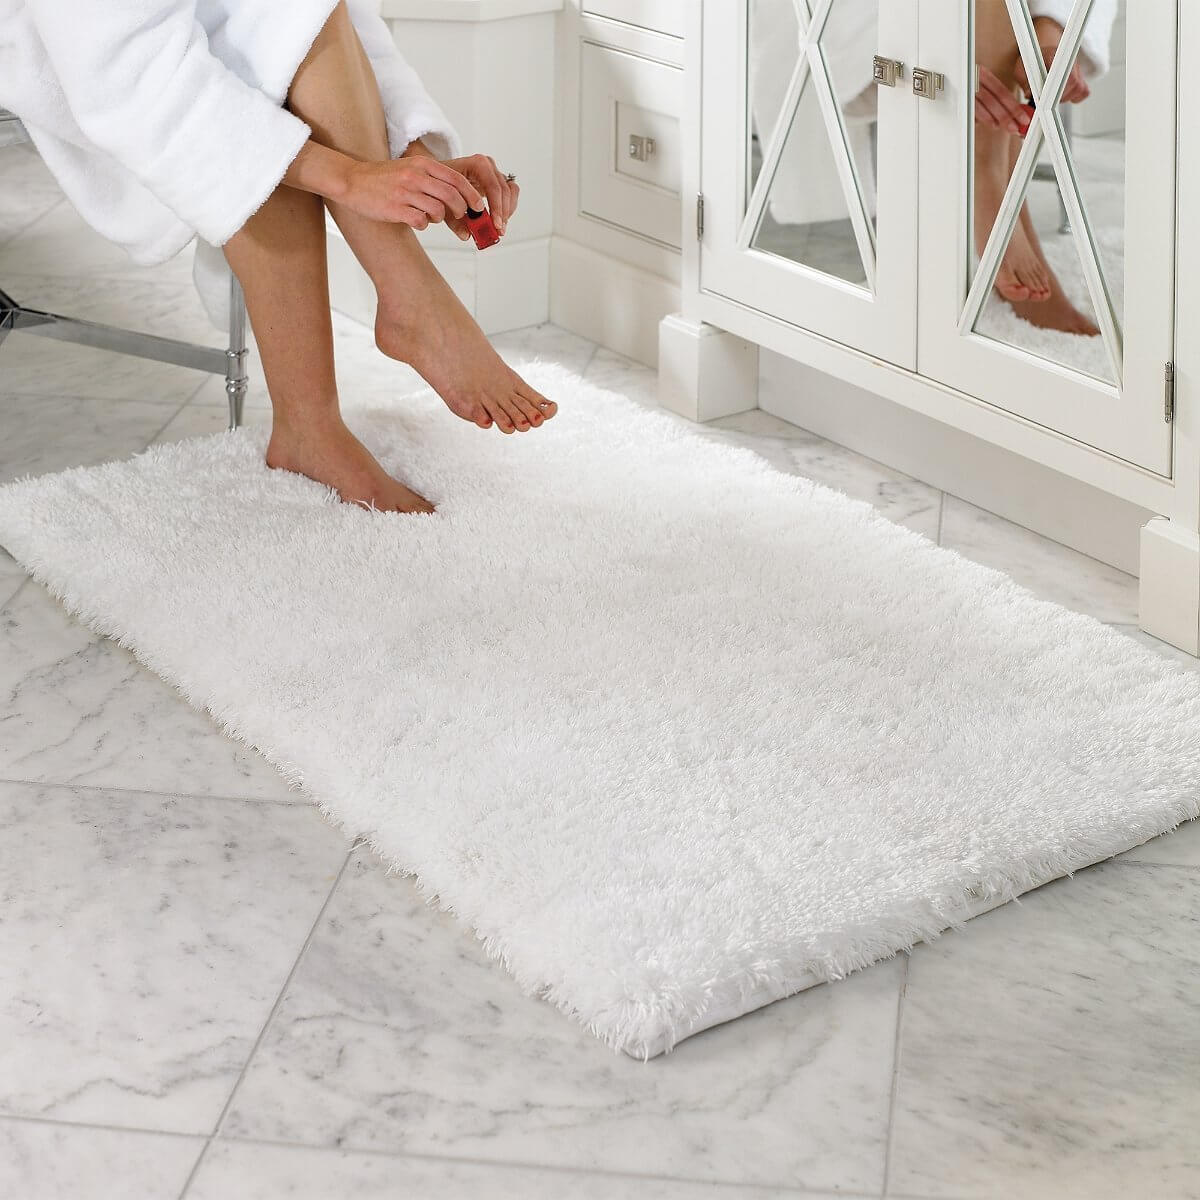 [Recommended] Best Bathroom Mat Of 2018